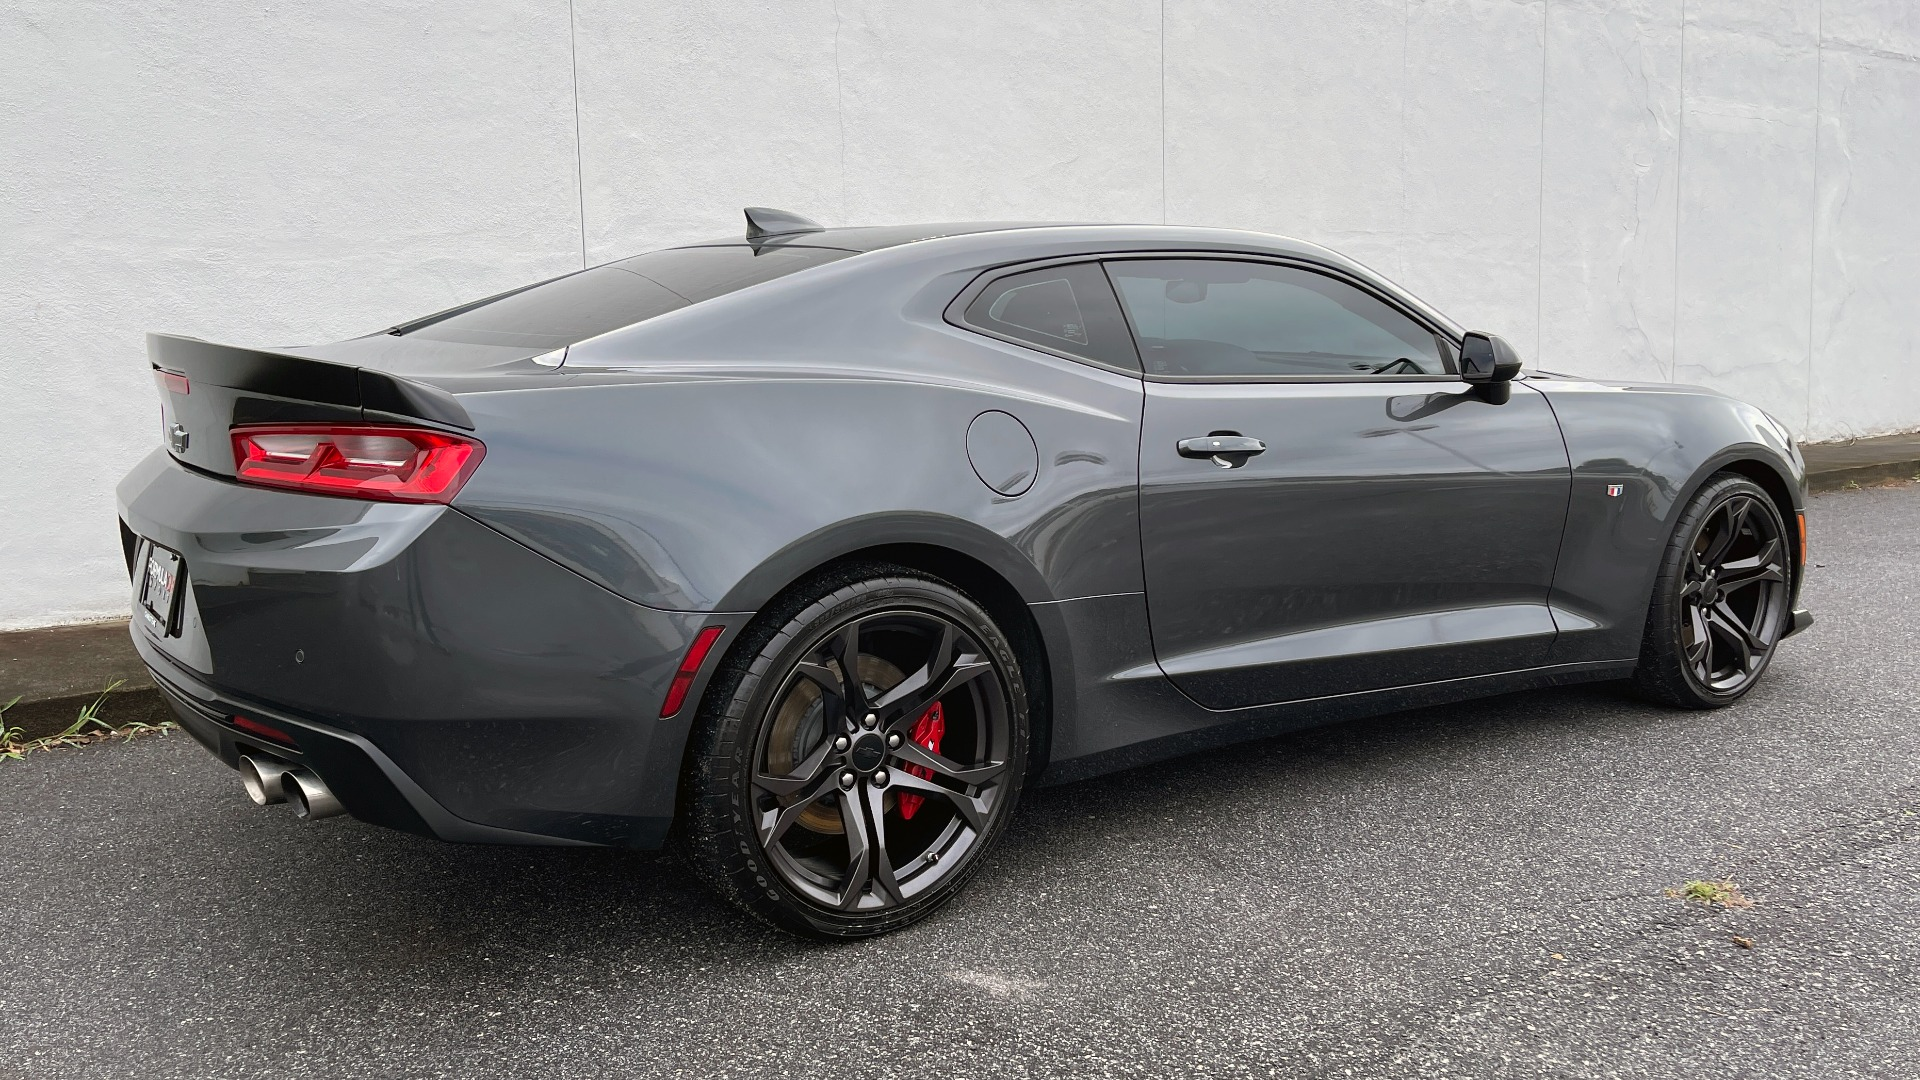 Used 2018 Chevrolet CAMARO 2SS / 6.2L V8 / MANUAL / 1LE TRACK PKG / NAV / BOSE / REARVIEW for sale $39,795 at Formula Imports in Charlotte NC 28227 4